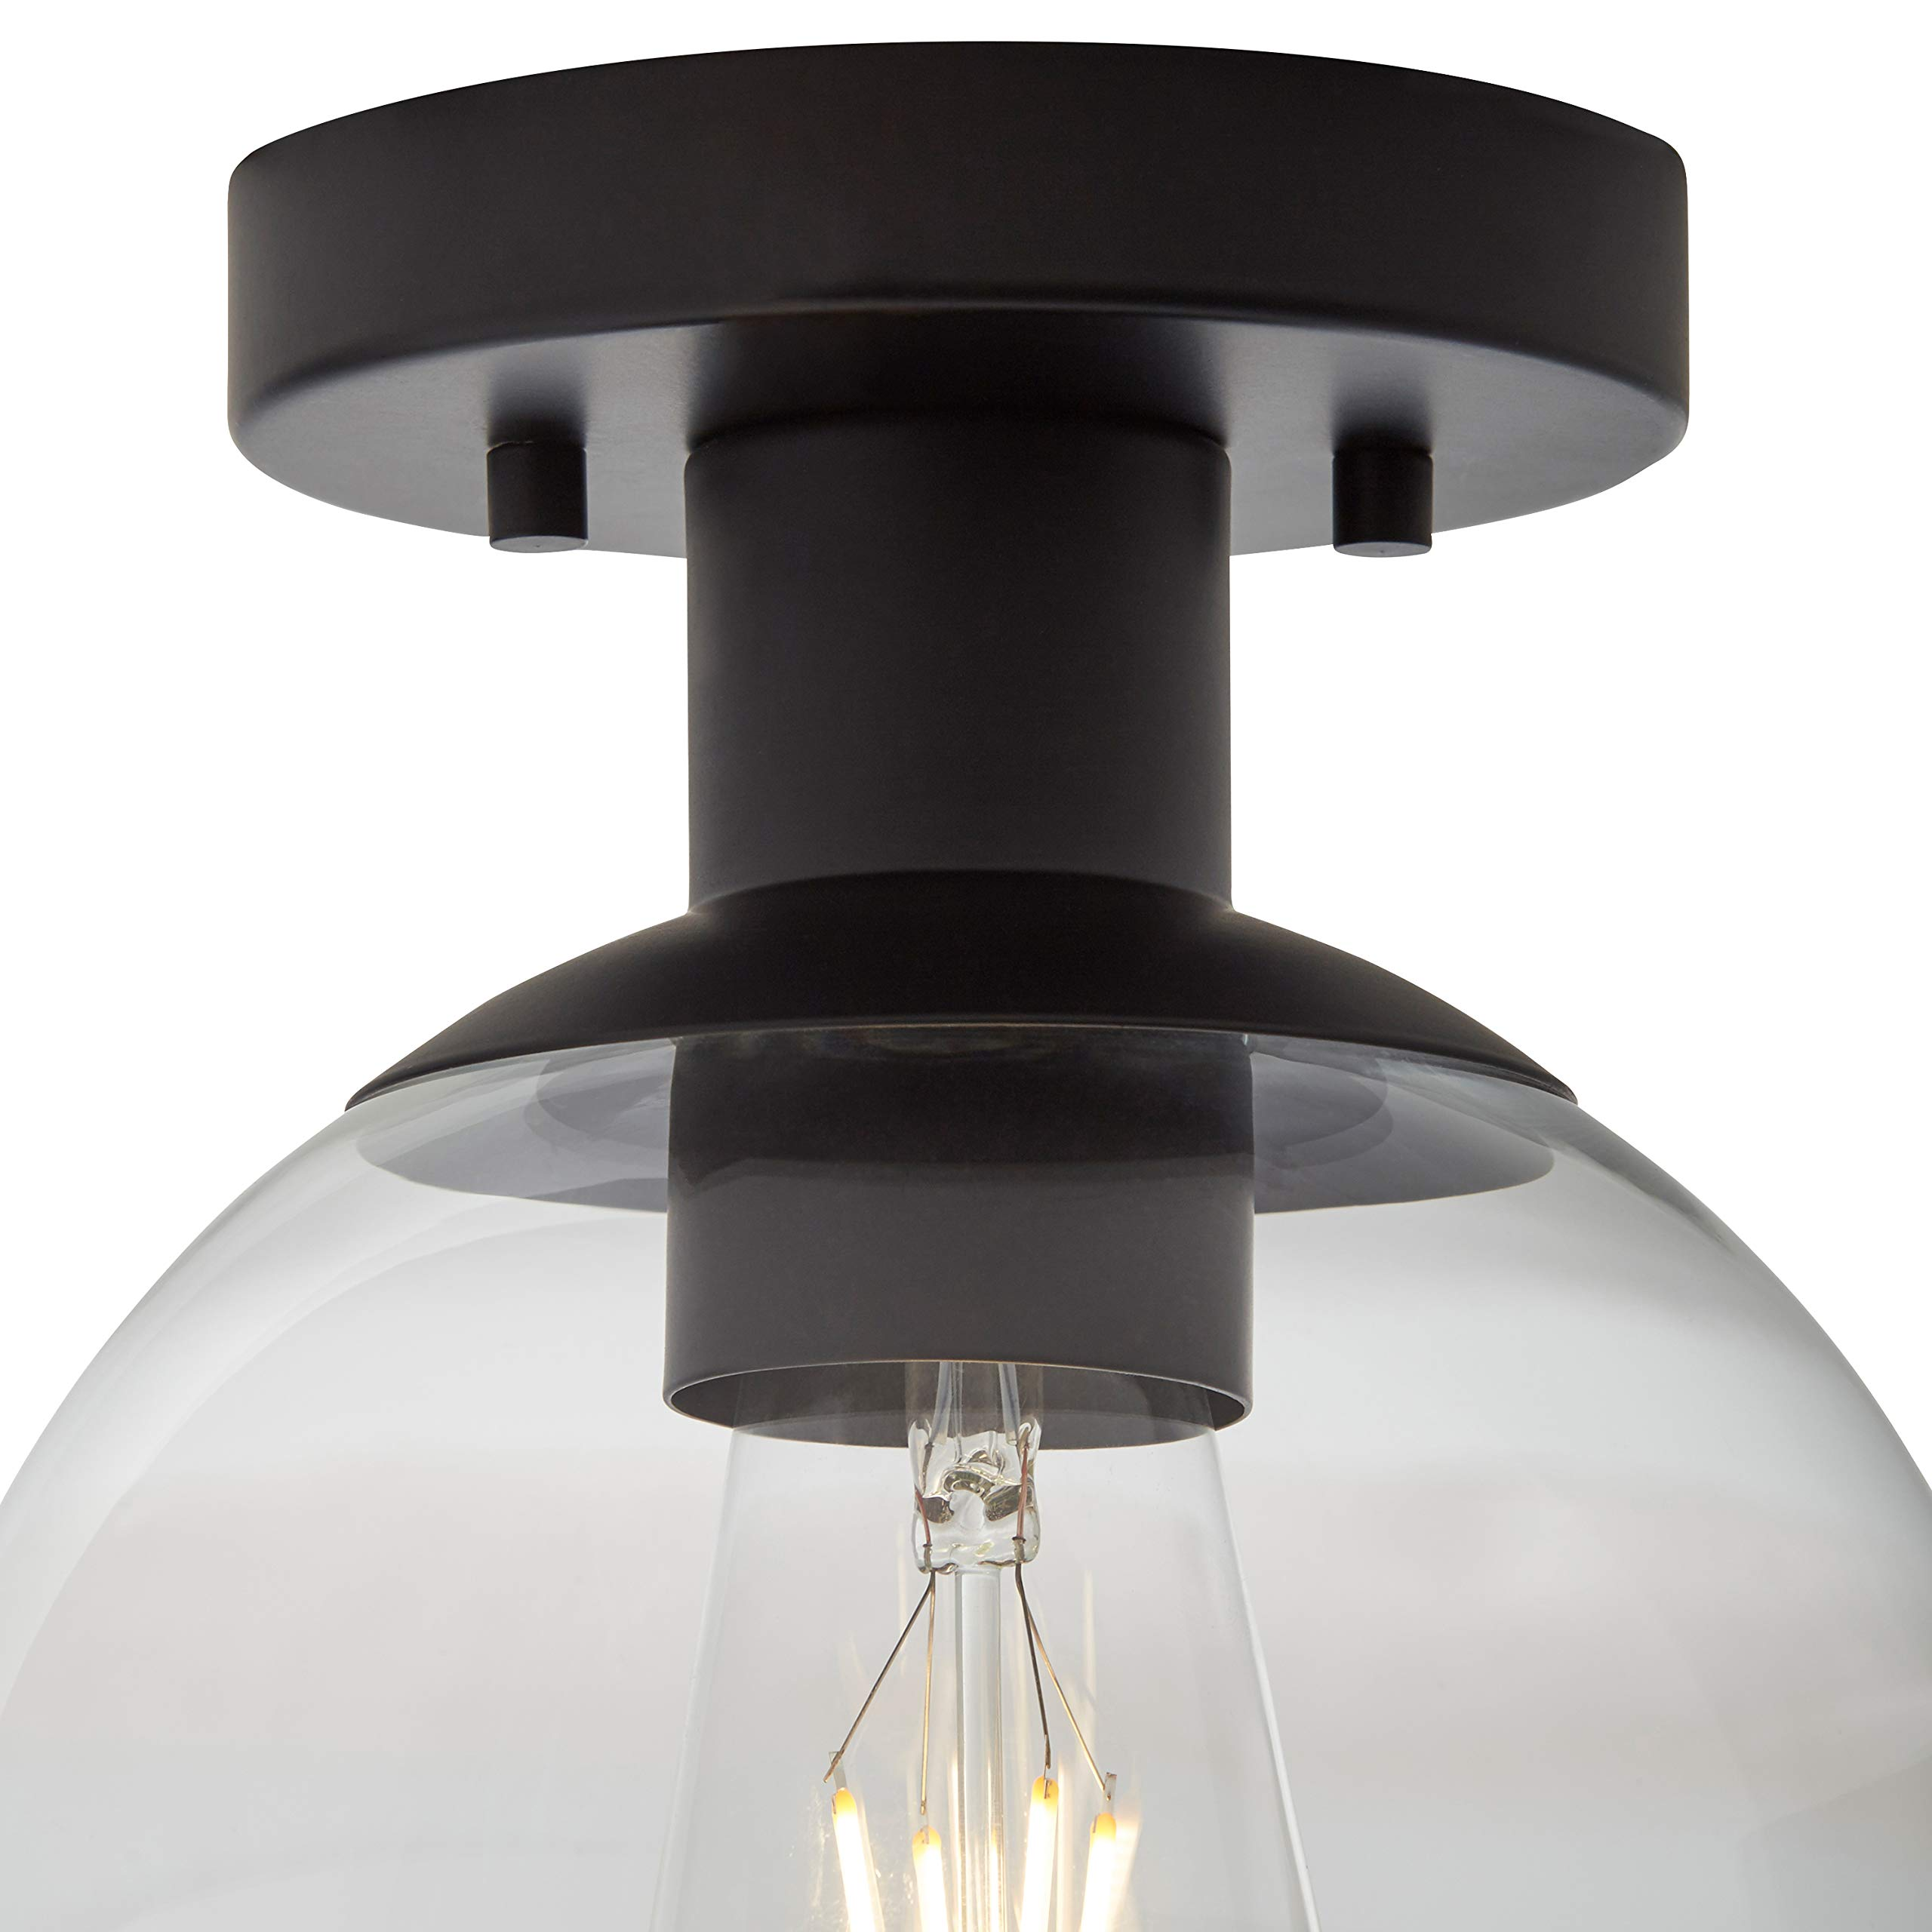 Rivet Mid-Century Flush-Mount with Bulb, 8.875''H, Black by Rivet (Image #1)